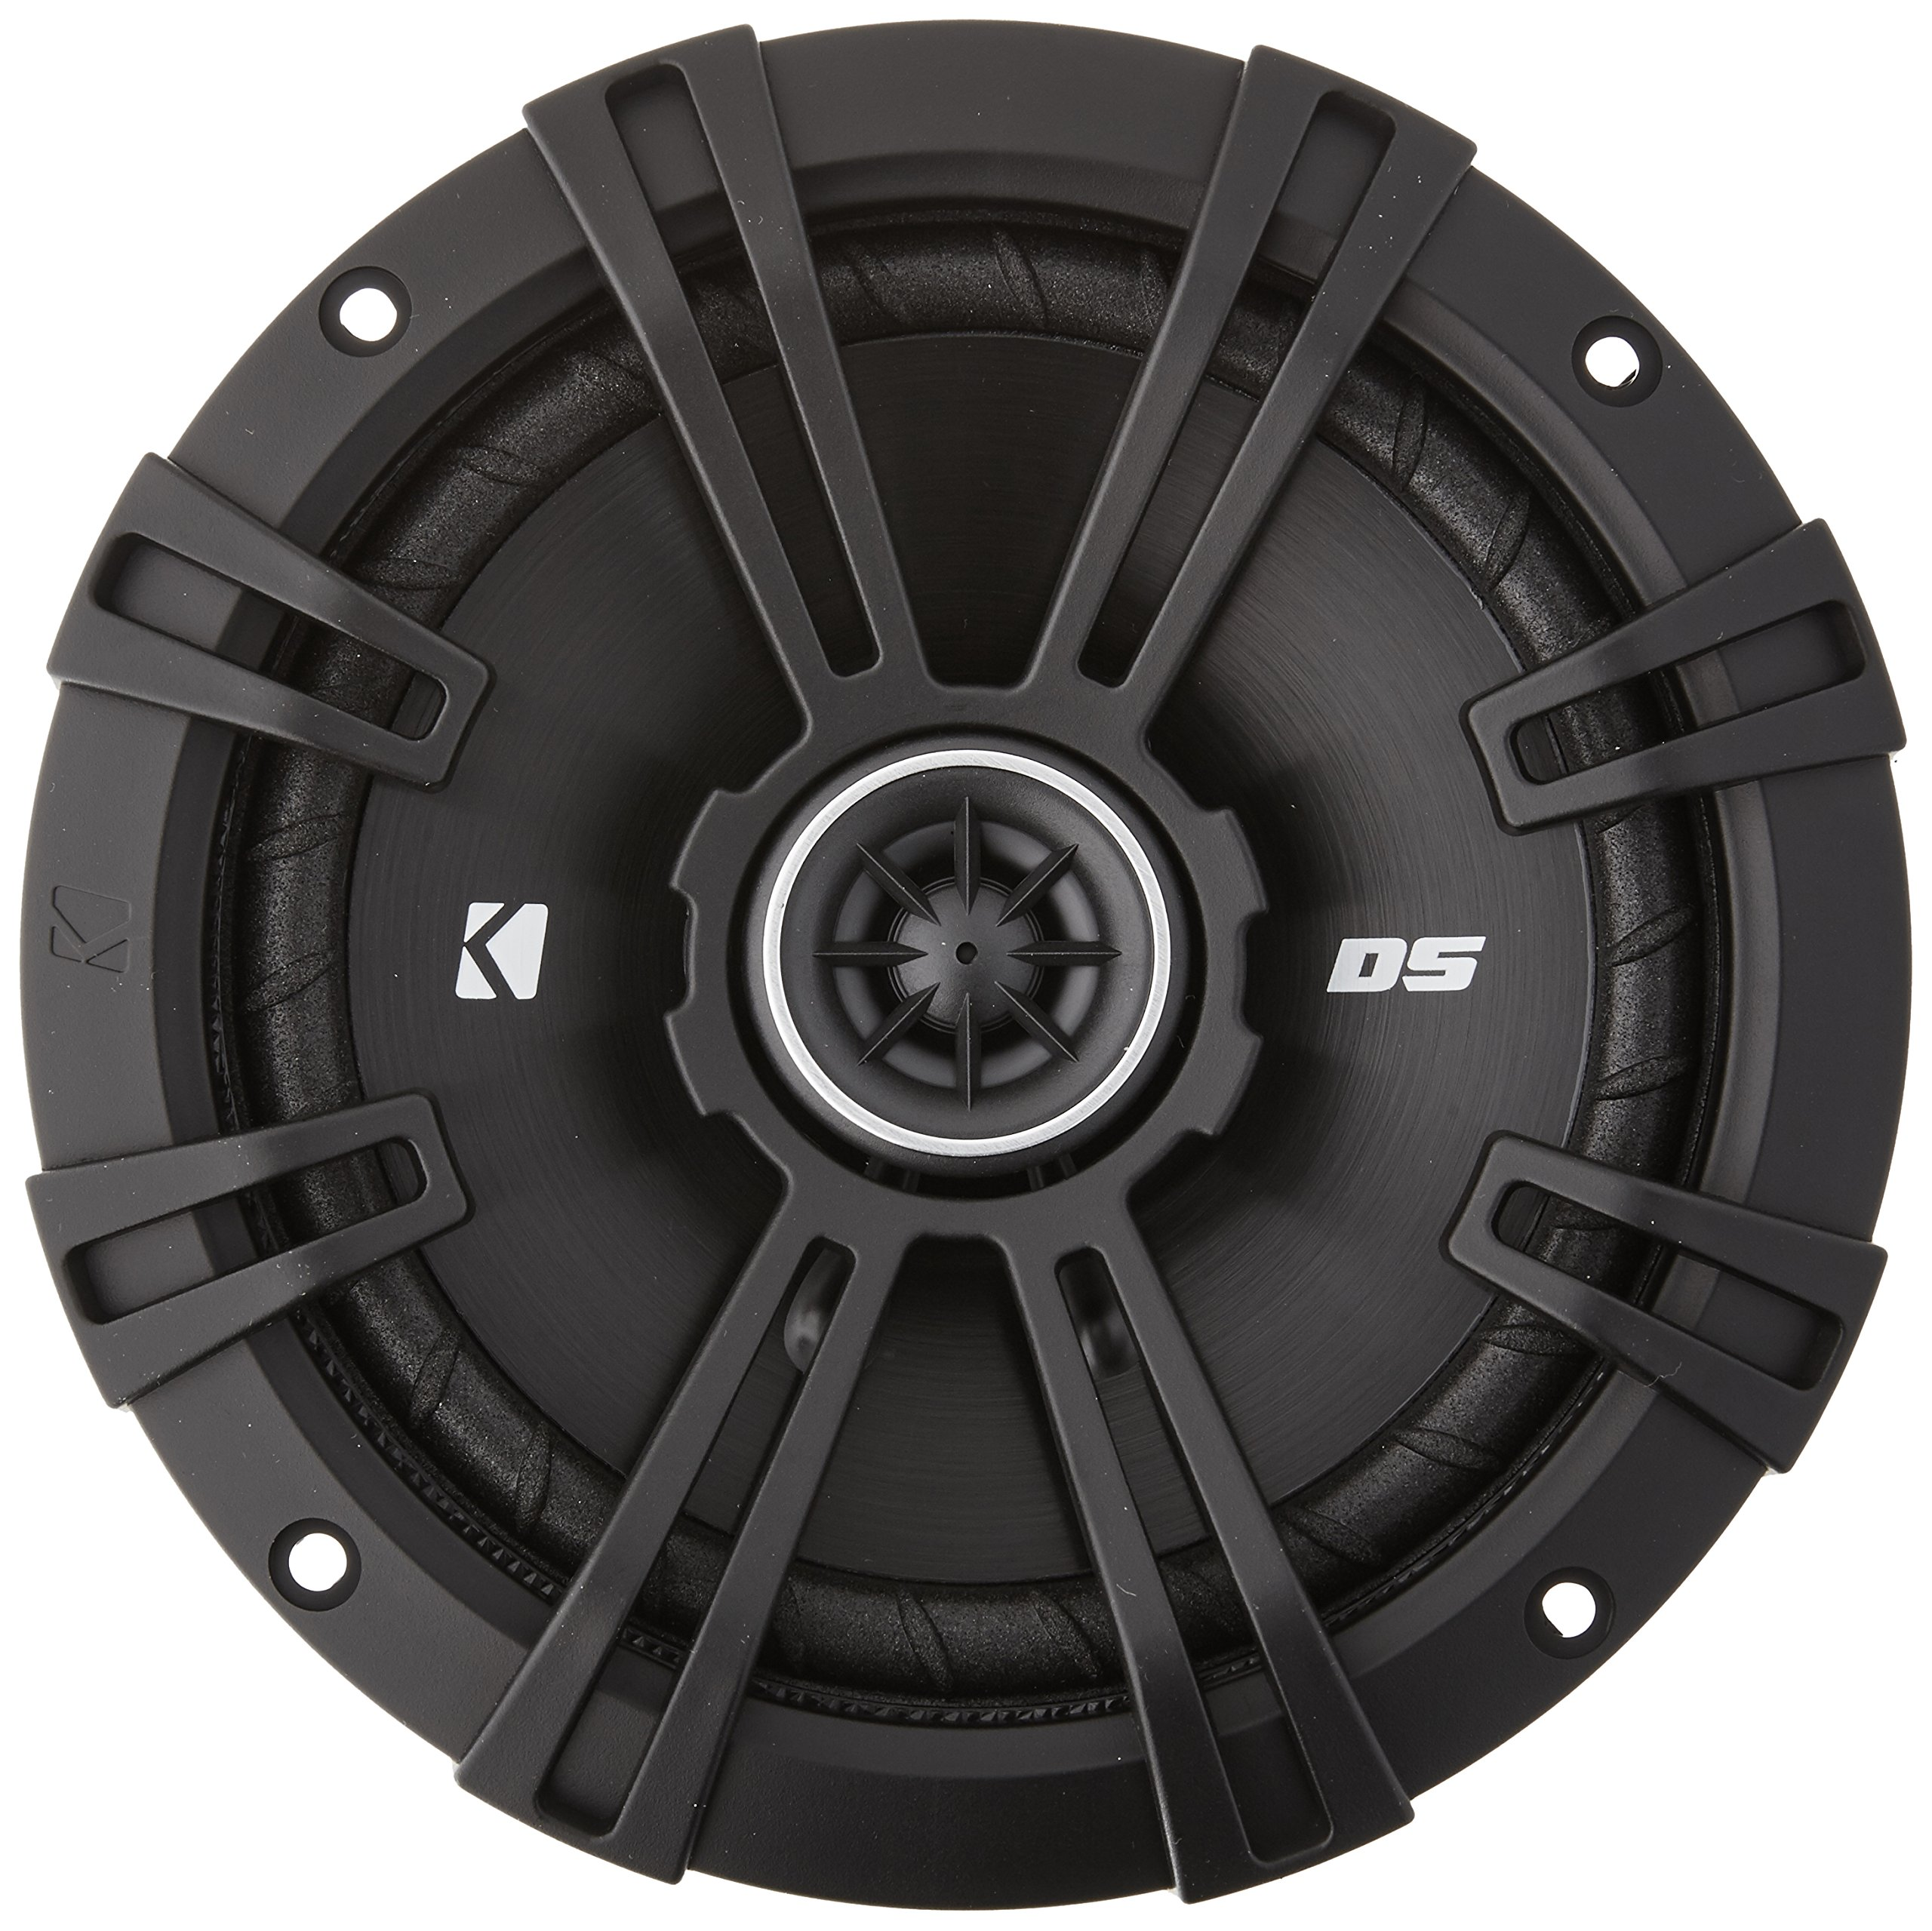 2) Kicker 43DSC6504 6.5'' 240 Watt 2-Way 4-Ohm Car Audio Coaxial Speakers DSC6504